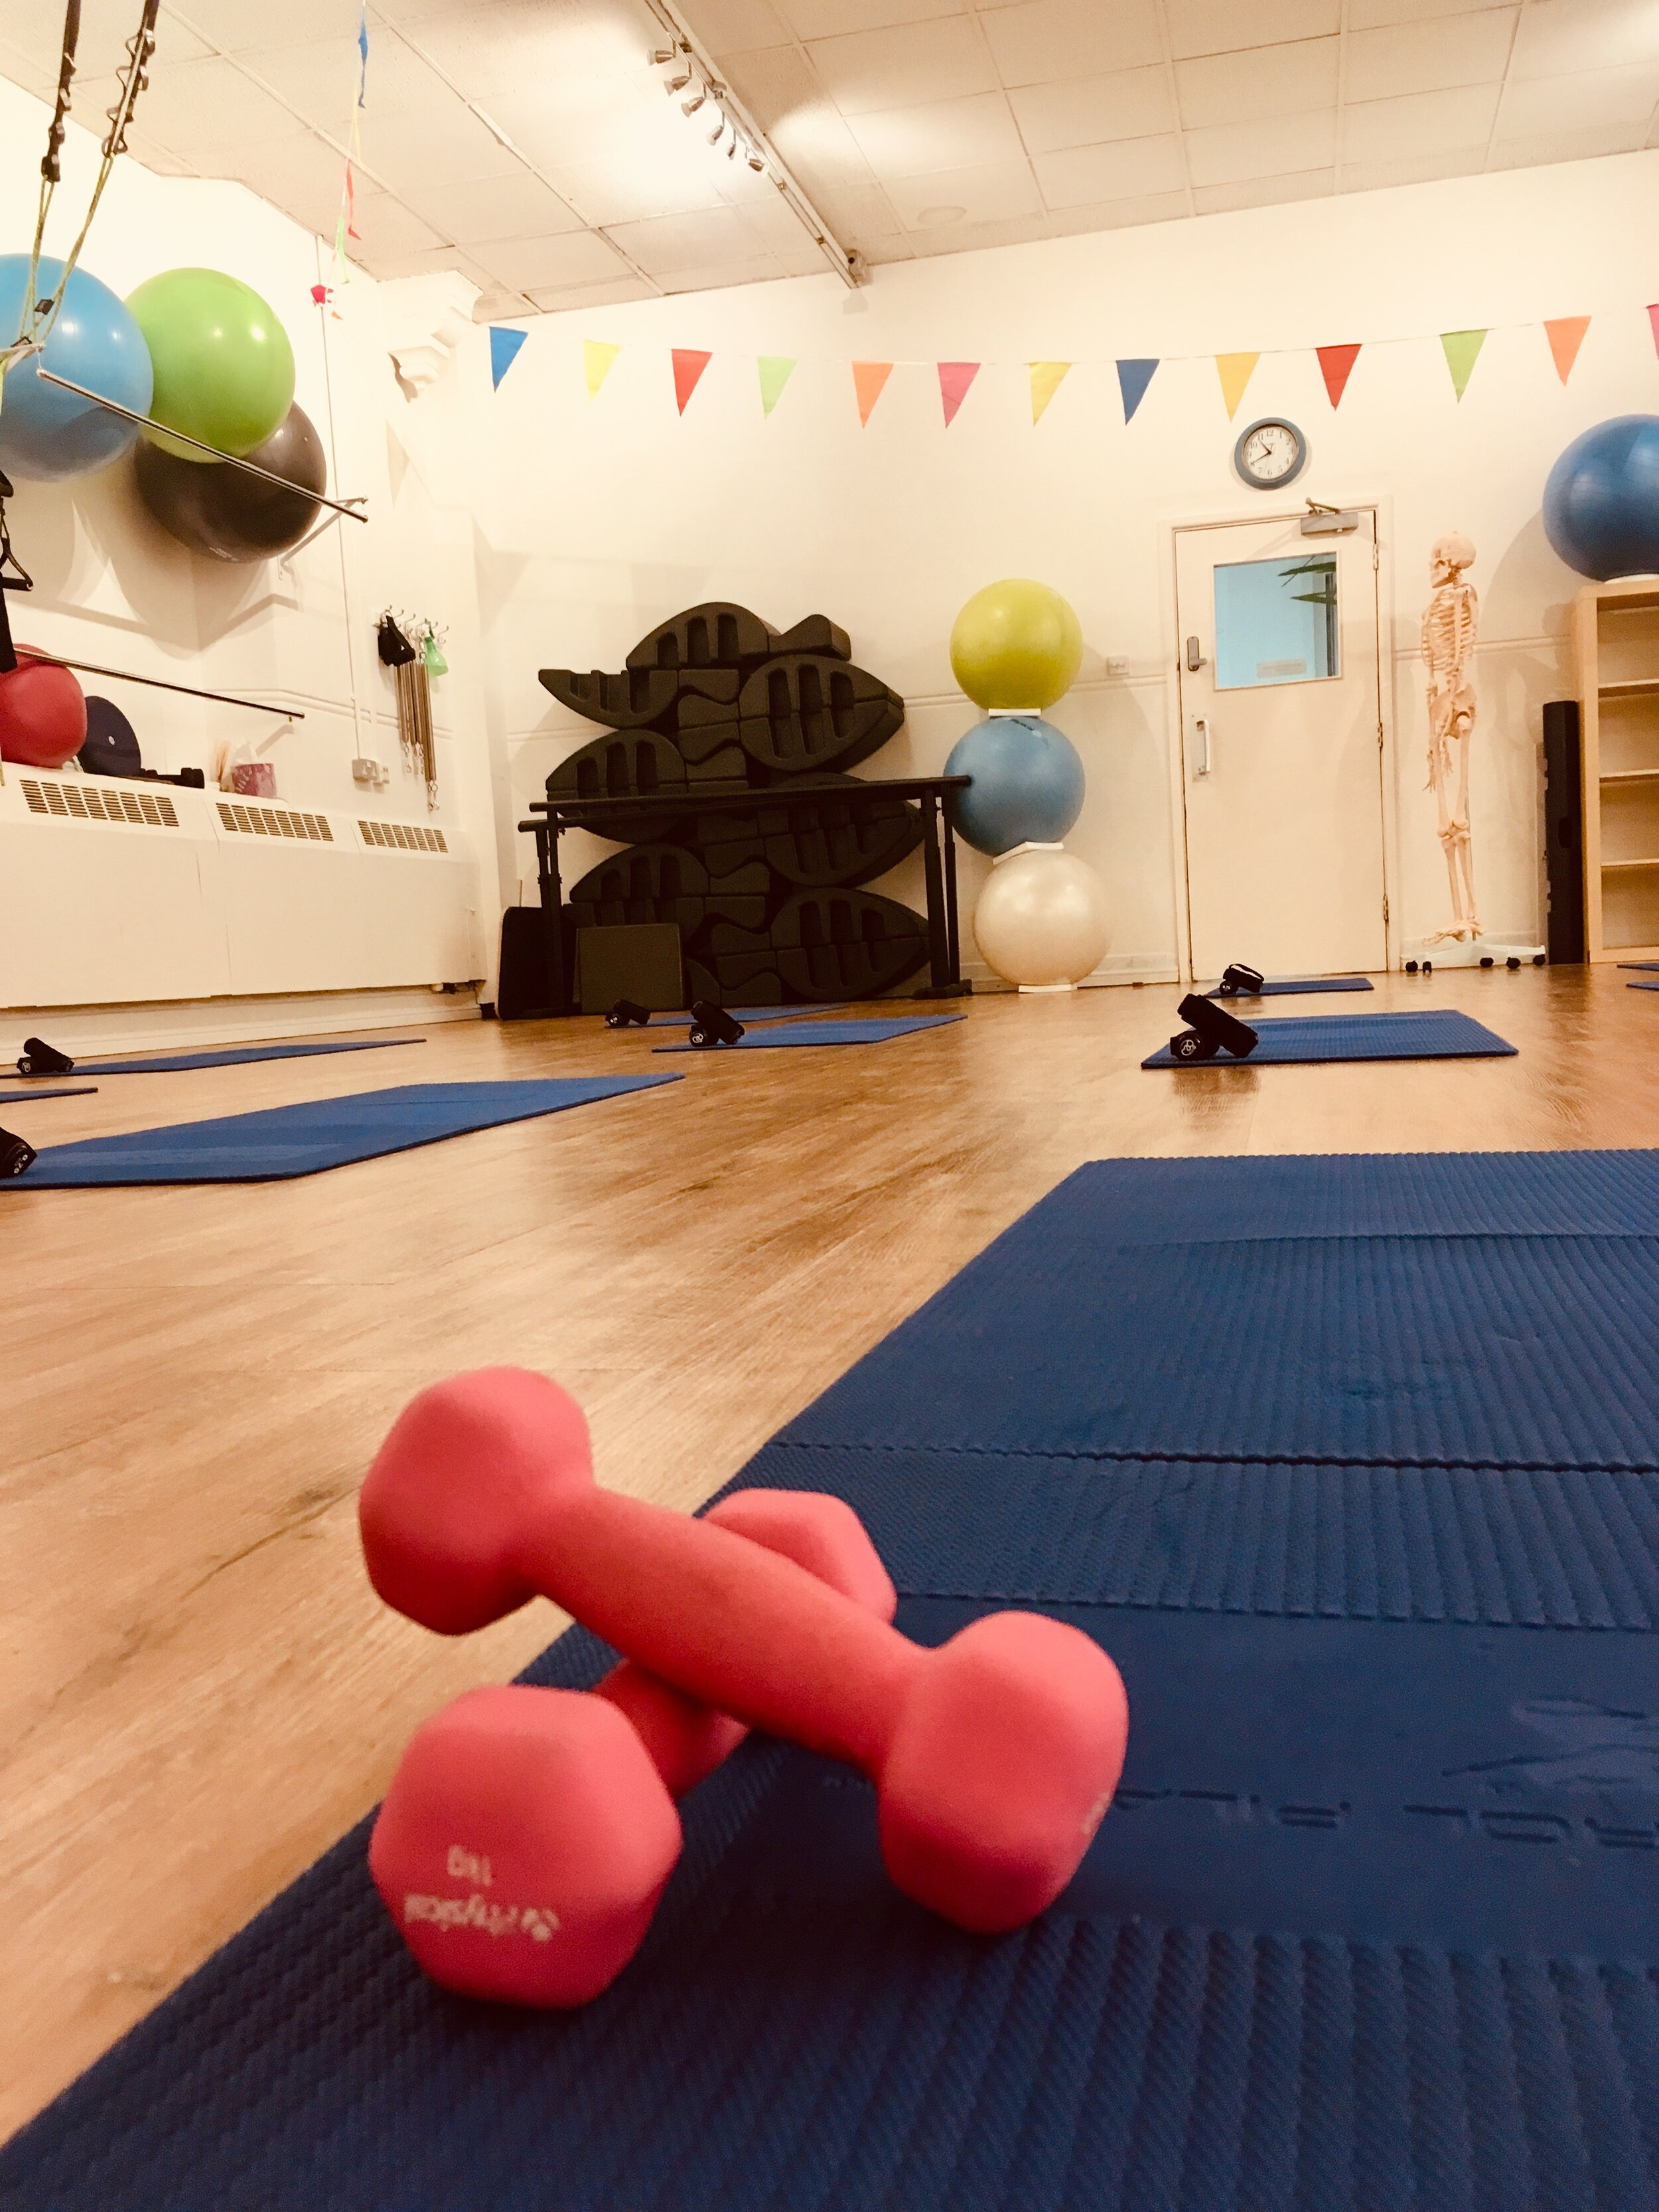 6 WEEK COURSE: - 1 hr Initial Core Restore Assessment6 Weekly 1 hour sessionsMaximum 6 people per classHomework videosEmail supportA fitness pack20% off Massage Voucher£10 off appointment price with Pelvic Health Physiotherapist, Debbie Dillon